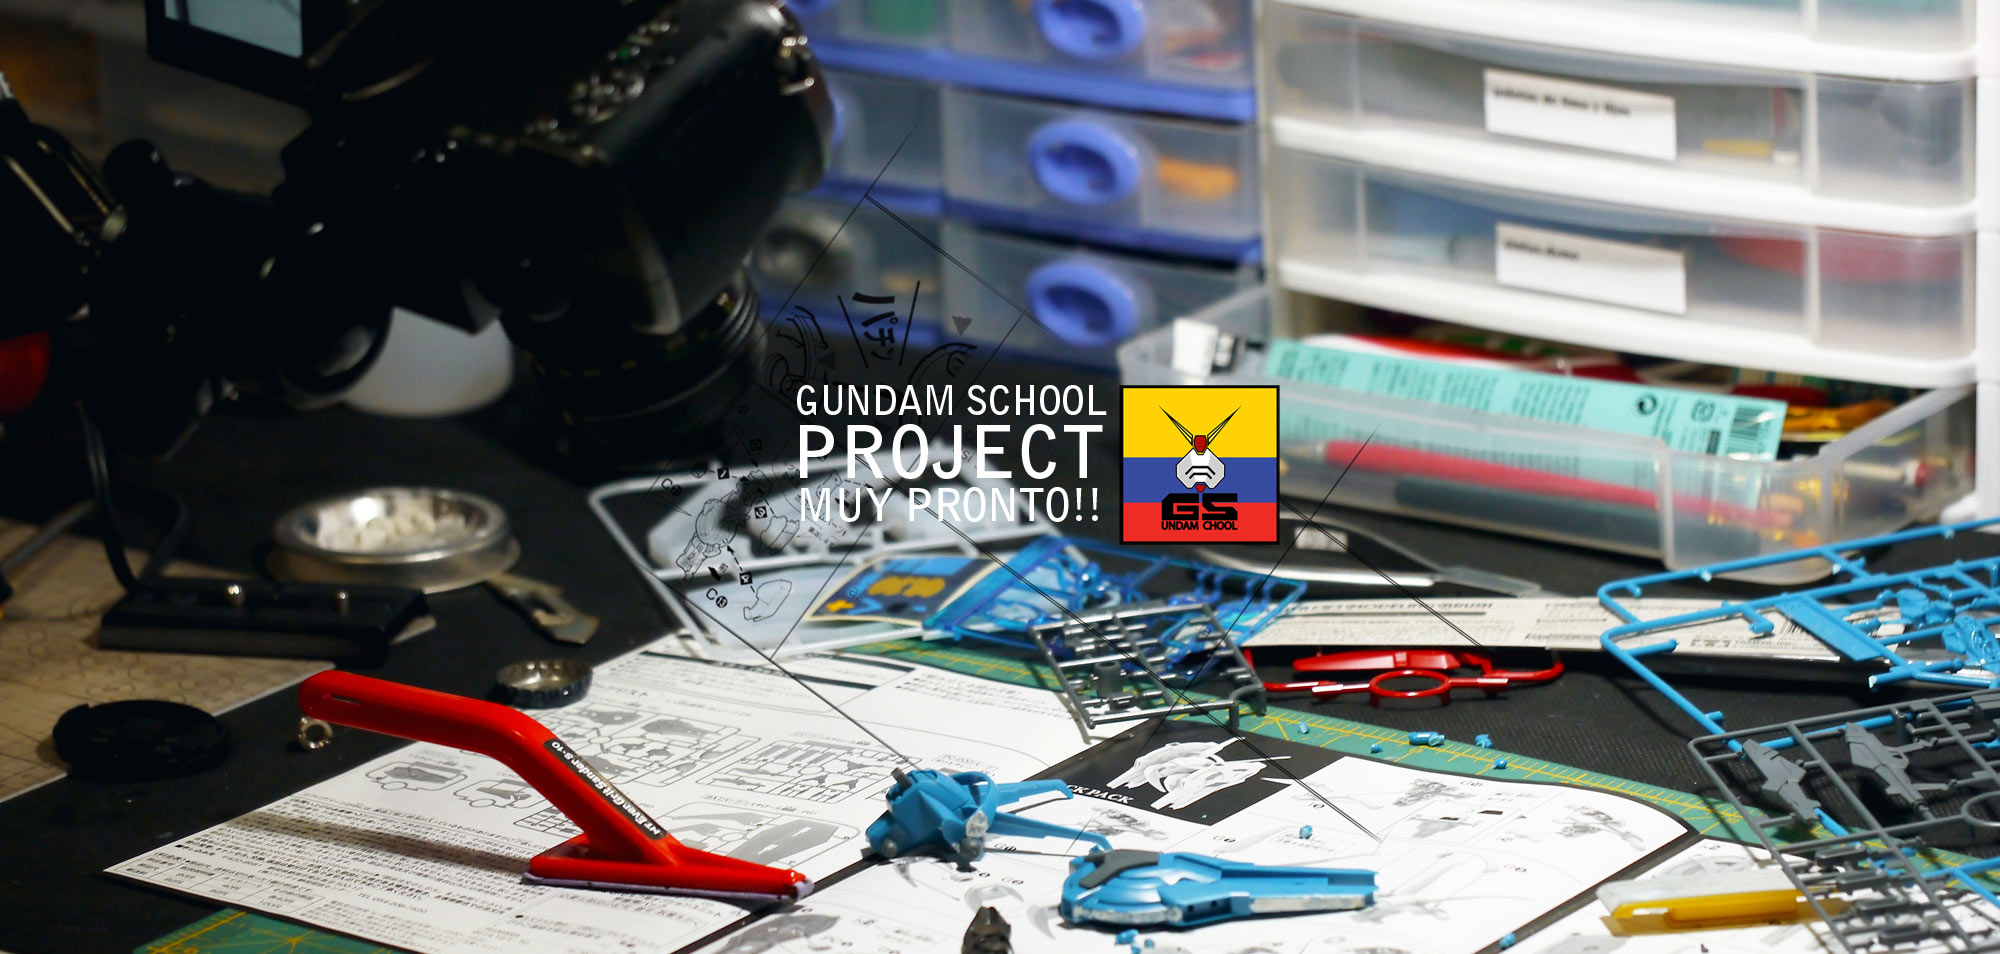 Que es el GUNDAM SCHOOL PROJECT?